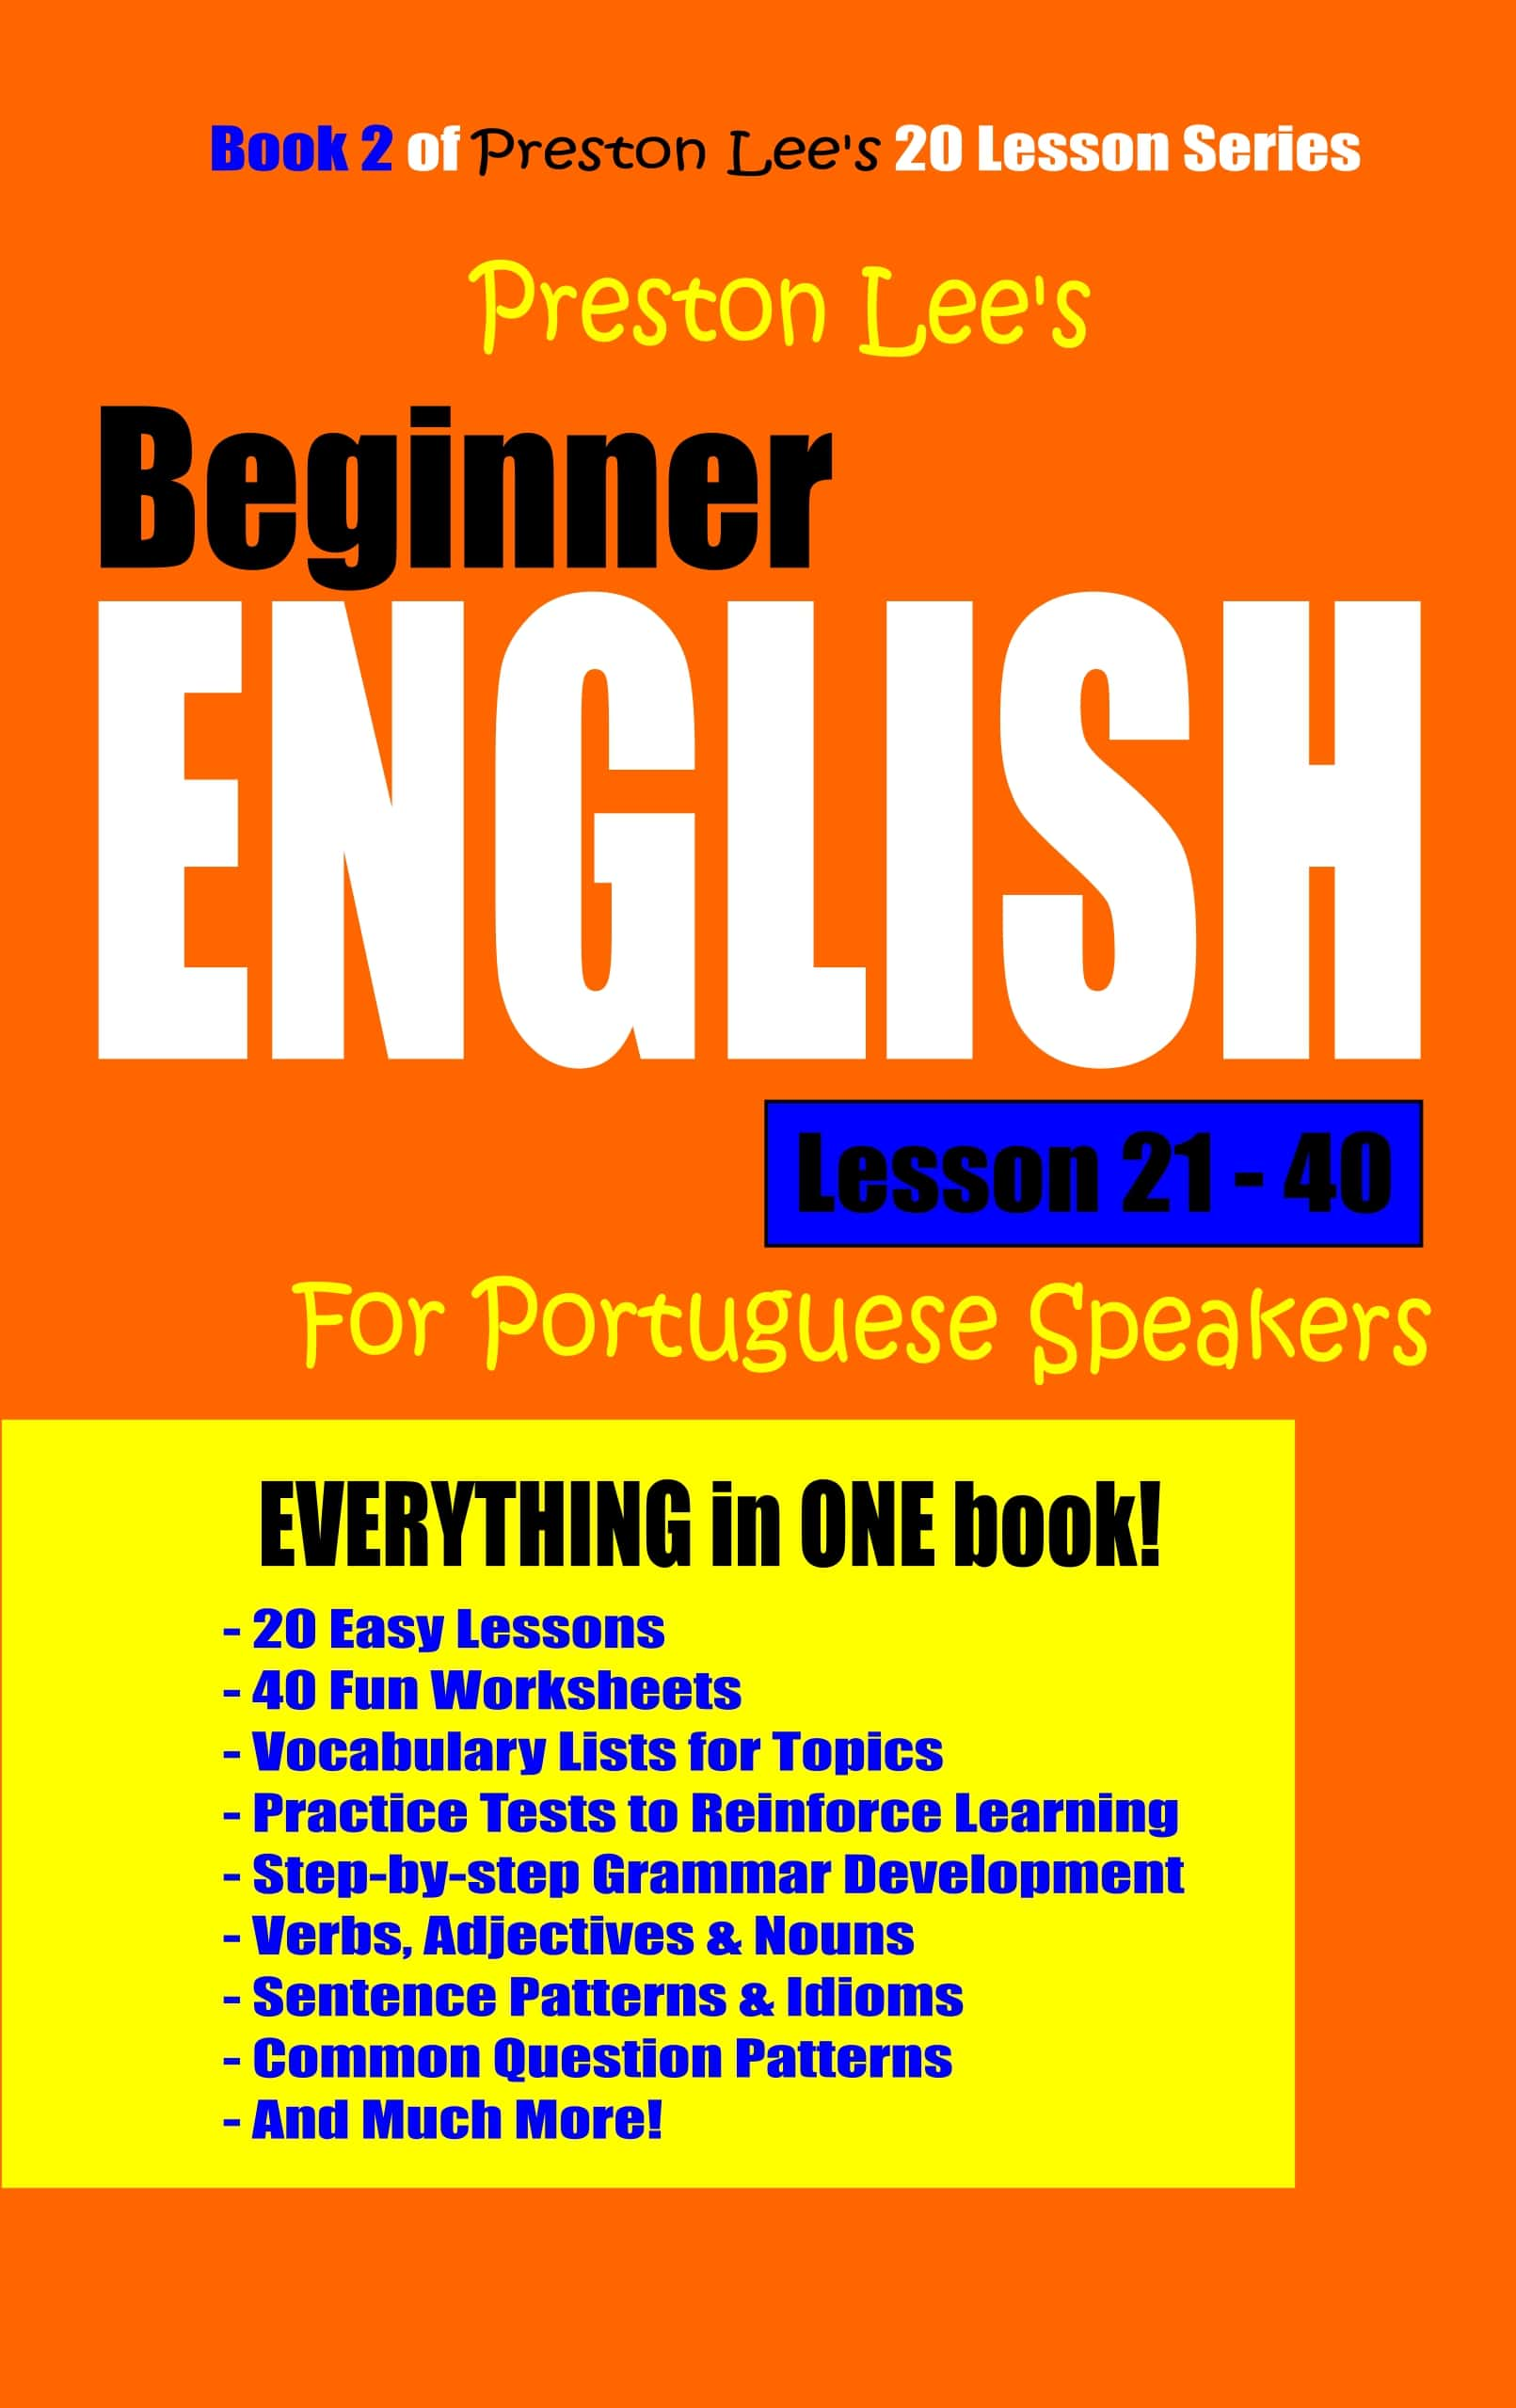 Preston Lee's Beginner English Lesson 21 - 40 For Portuguese Speakers, an  Ebook by Preston Lee